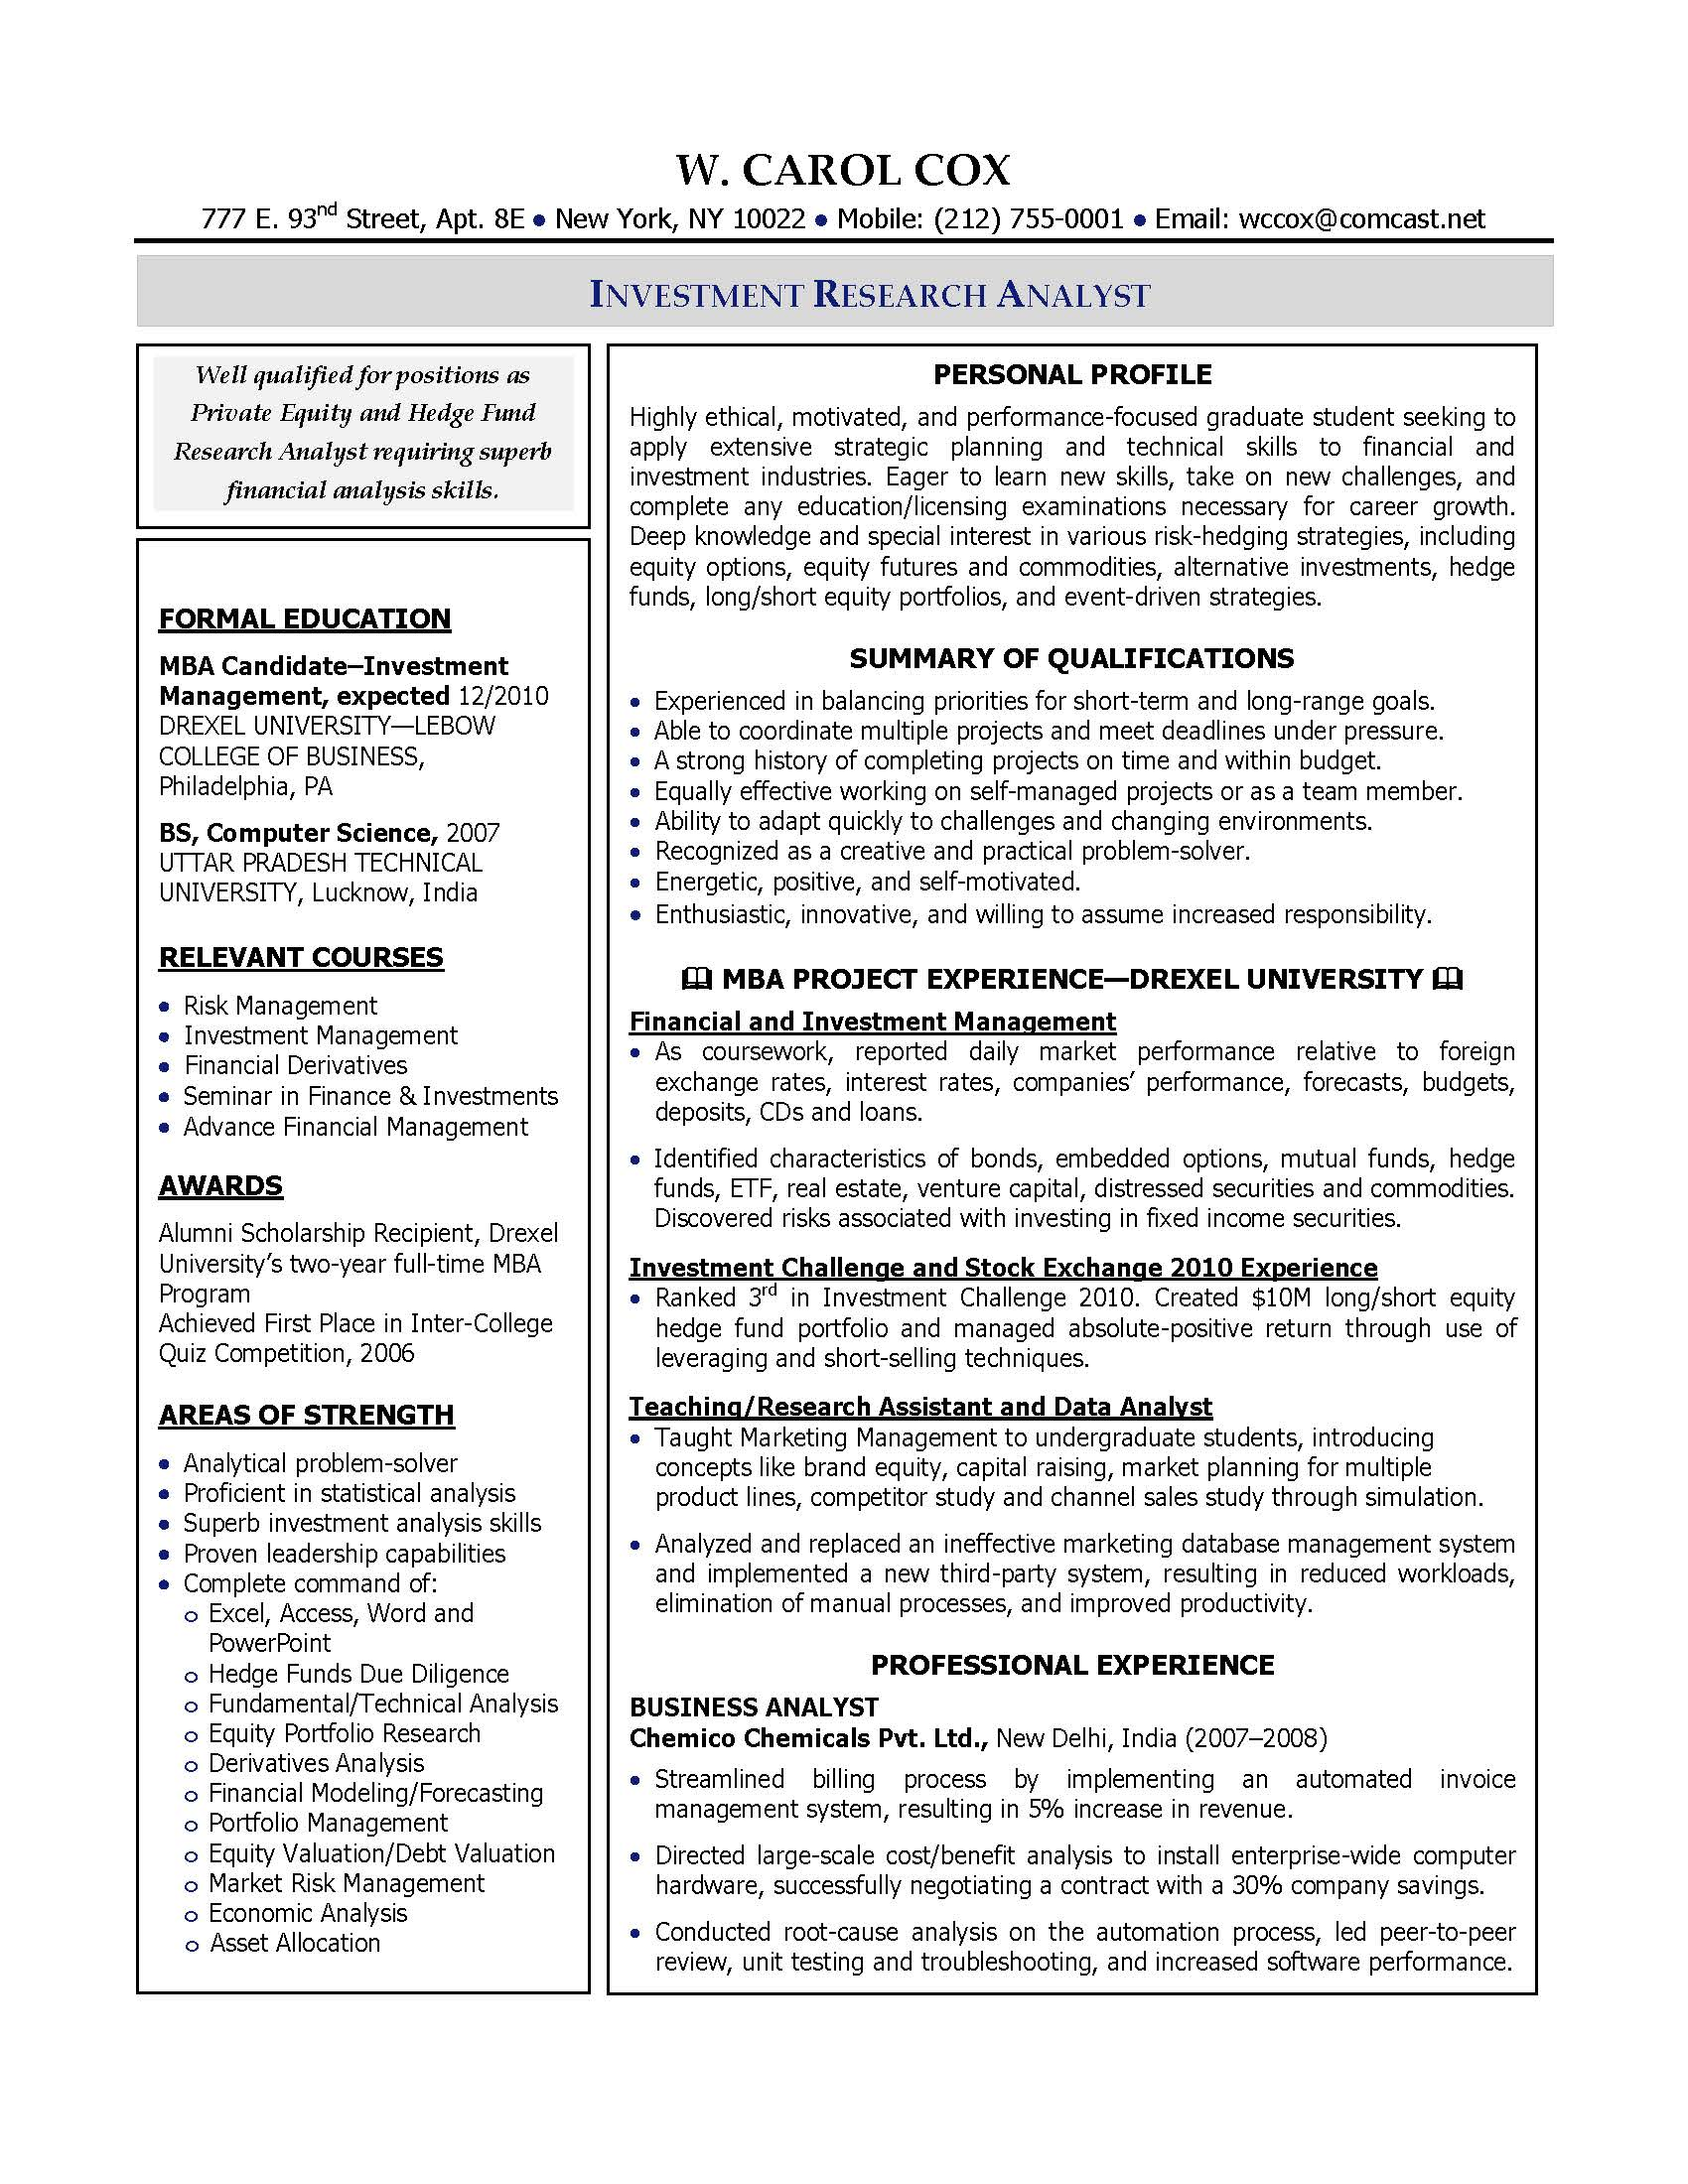 investment research analyst resume sample provided by elite resume writing services - Systems Analyst Resume Samples